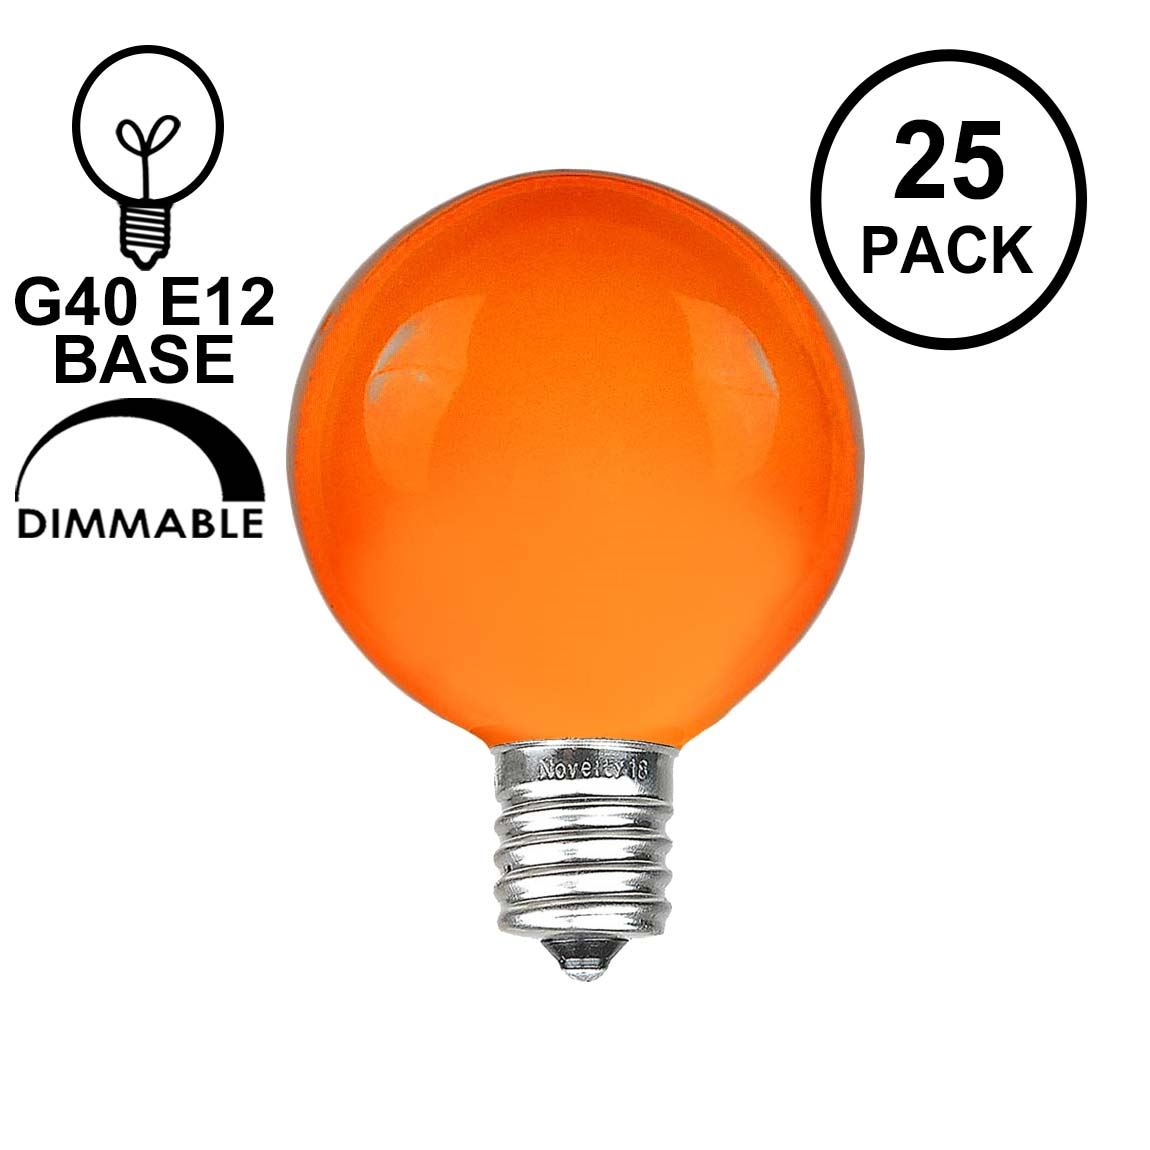 Picture of Orange G40 Globe Replacement Bulbs 25 Pack